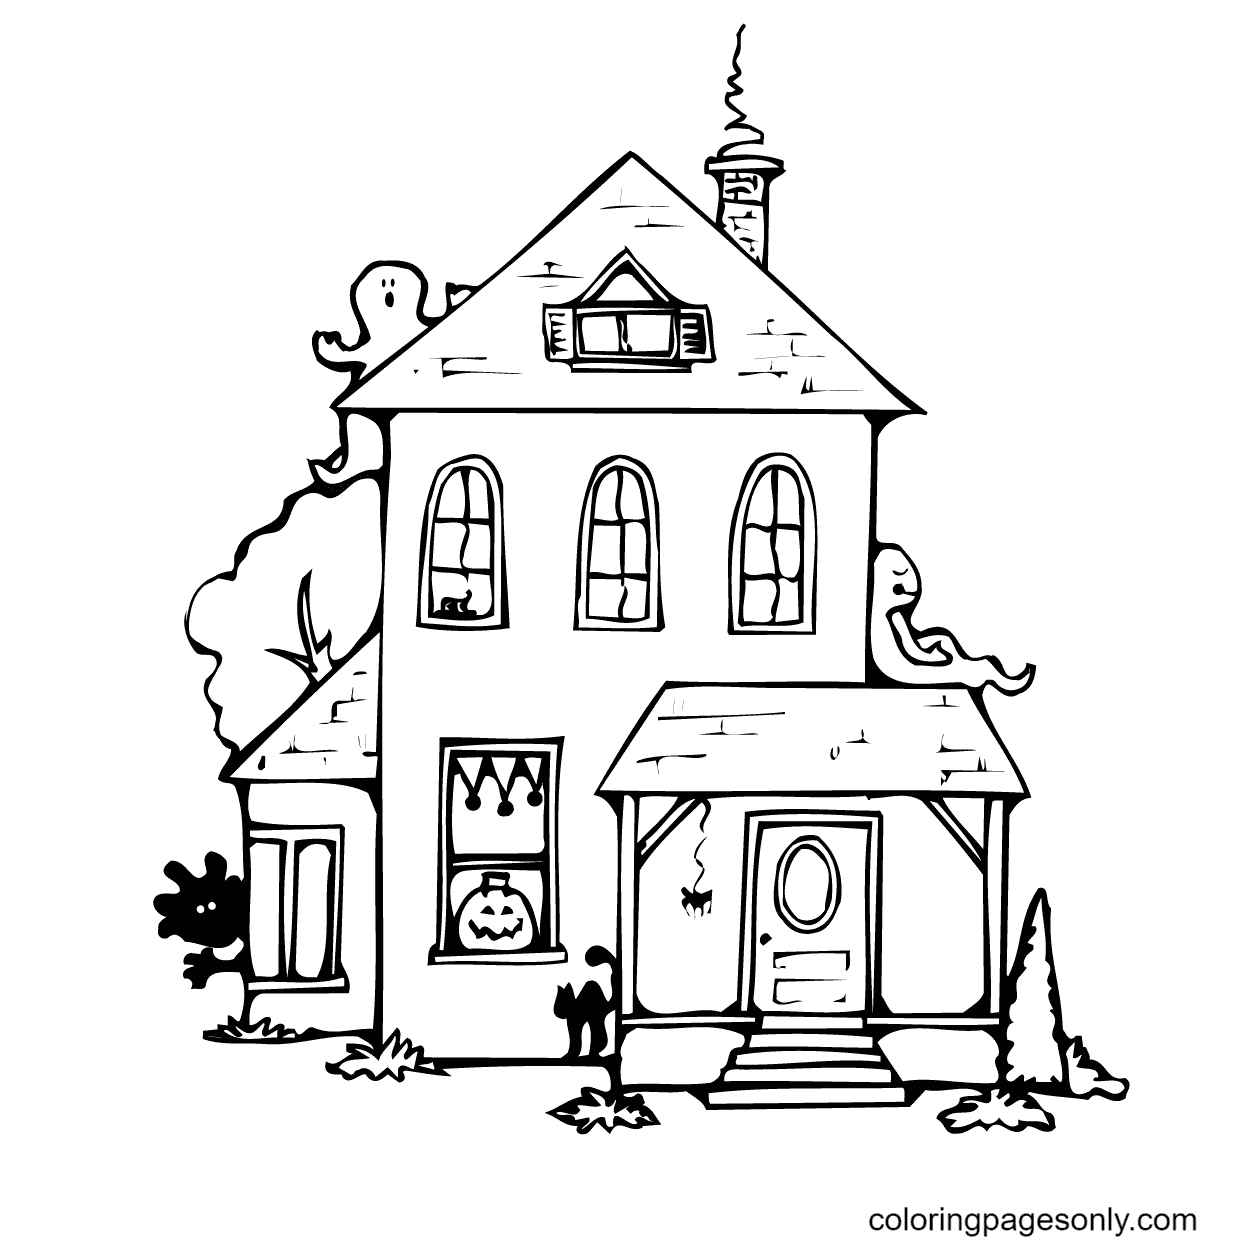 Ghosts Around the House Coloring Page